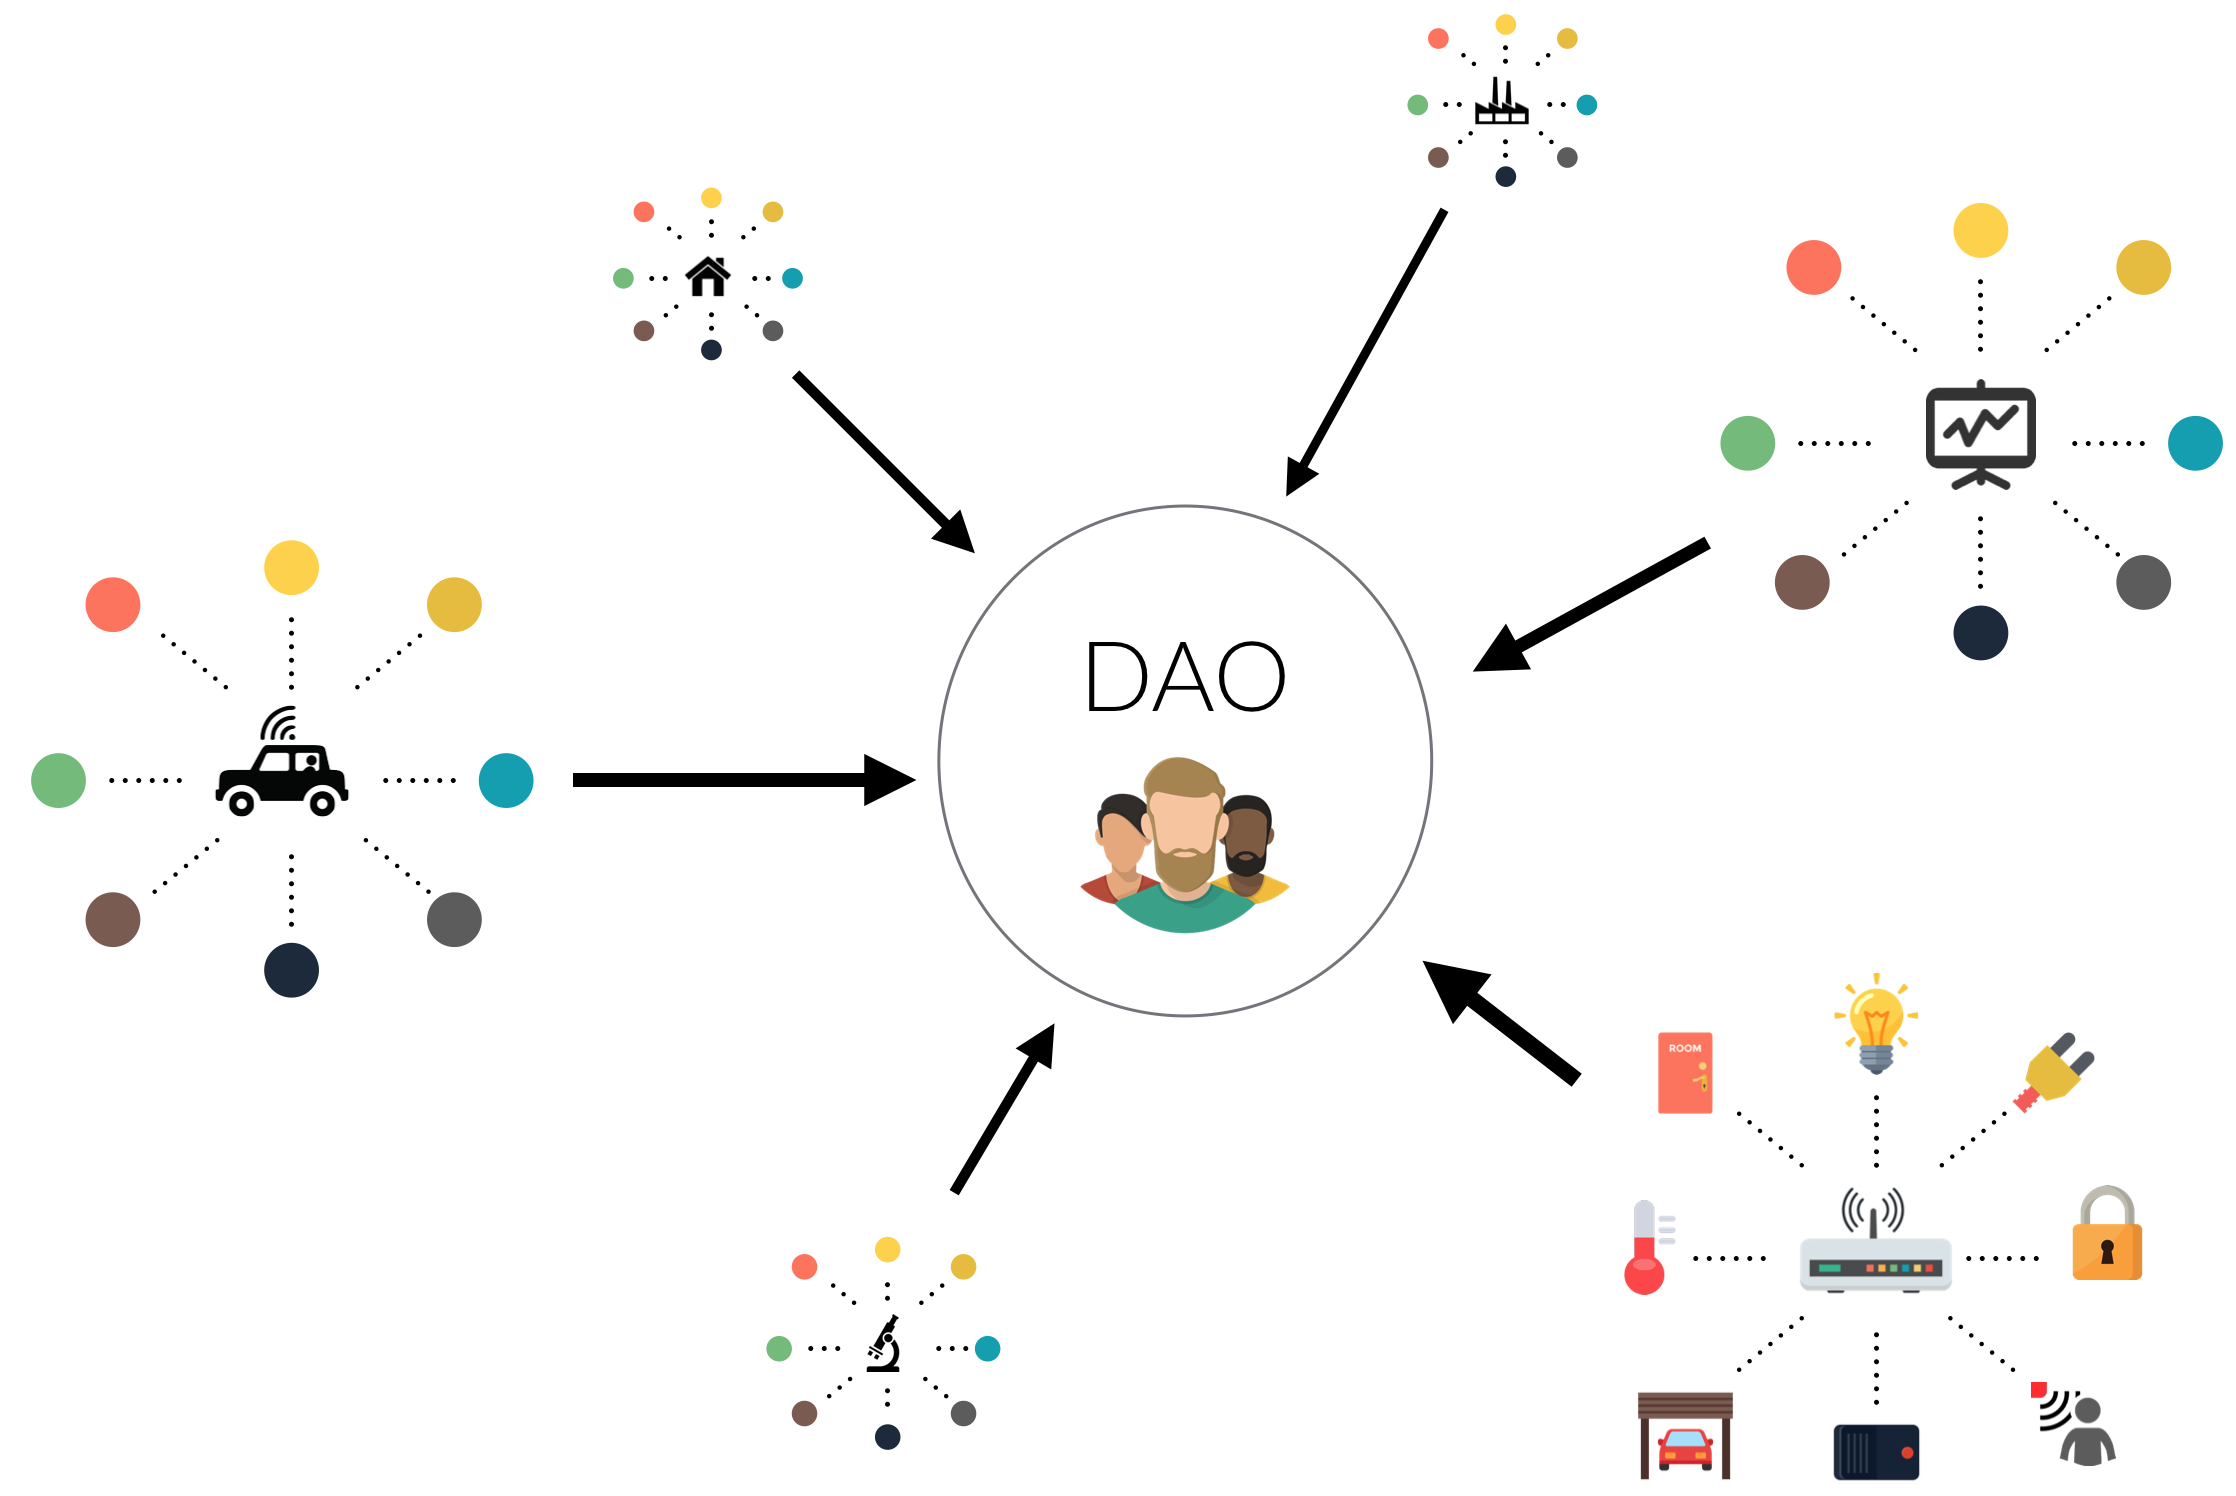 "The DAO is a Decentralized Autonomous Organization (""DAO"") - more specifically, it is a new breed of human organization never before attempted. The DAO is borne from immutable, unstoppable, and irrefutable computer code, operated entirely by its members, and fueled using ETH which Creates DAO tokens."